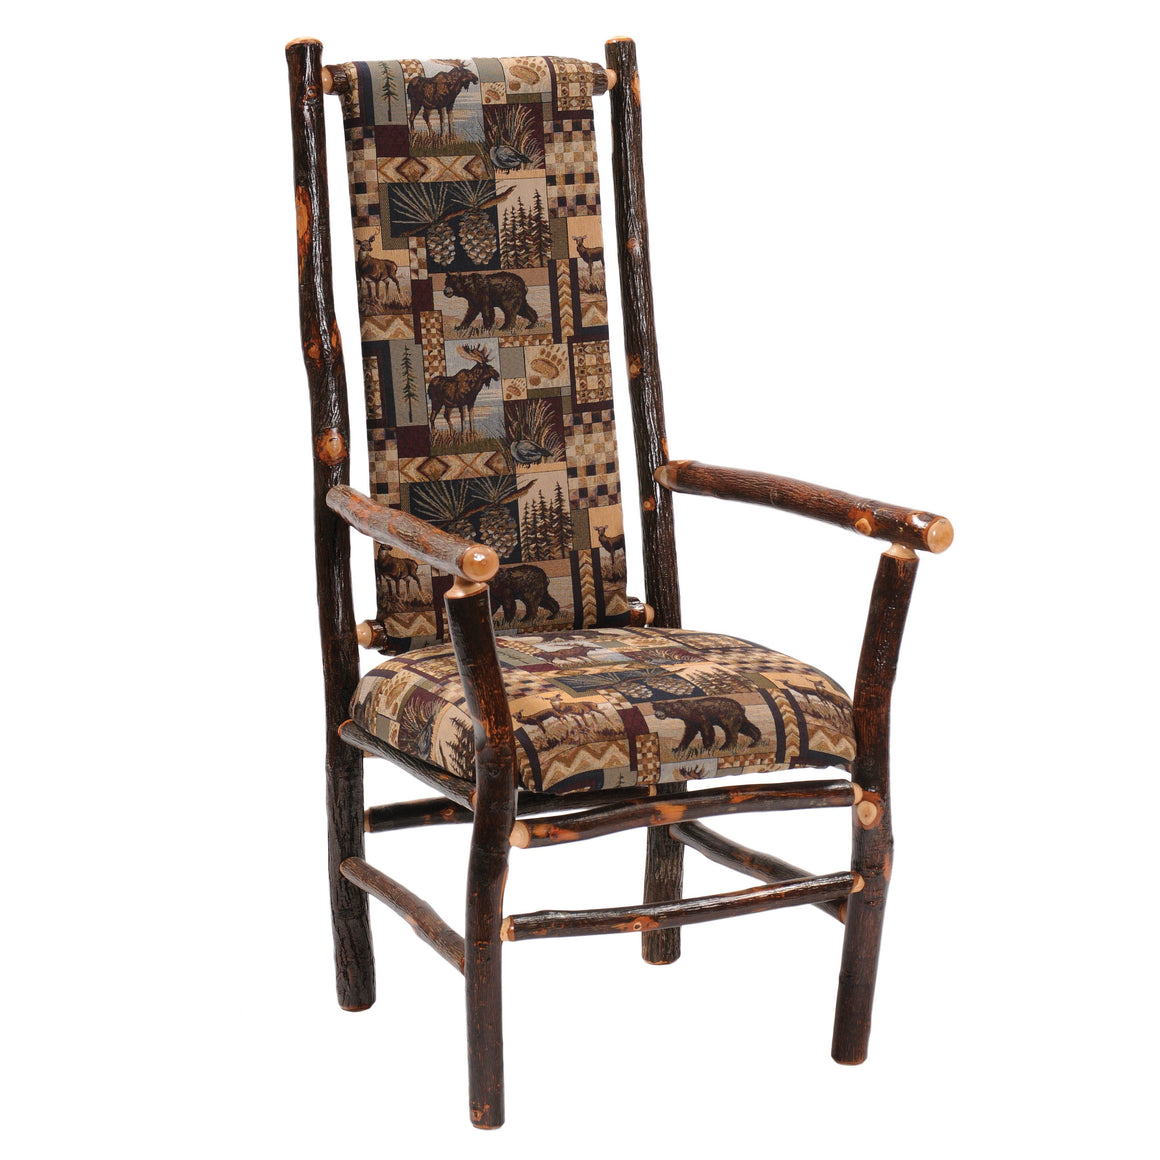 Natural Hickory Log High-back Upholstered Arm Chair - Standard Finish-Rustic Deco Incorporated